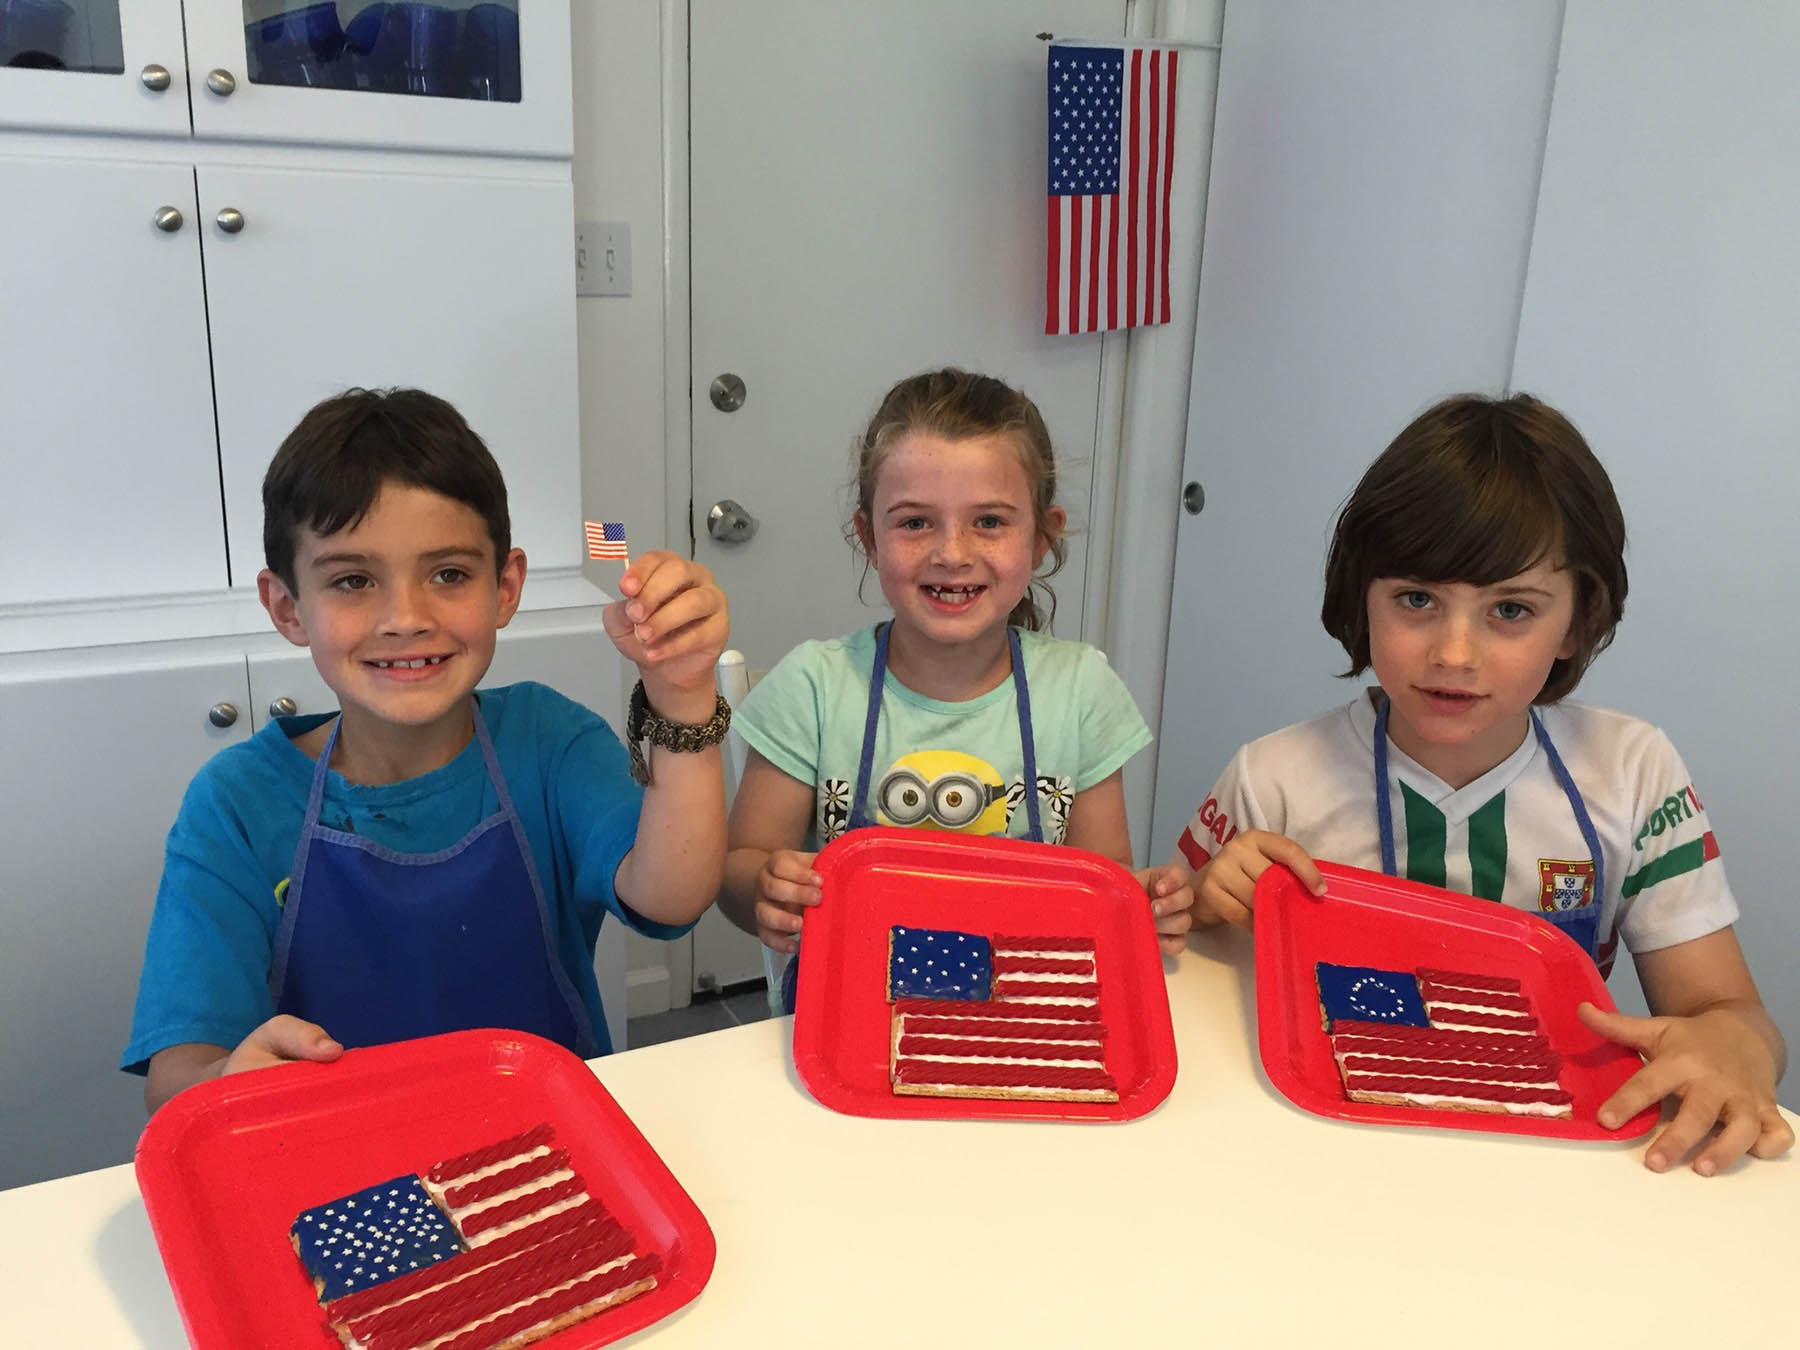 Robin Seeley  Roan, Abby, and Gabe show off their 1959, 1814 and 1776 models of our national flag. Gabe was a special guest from San Francisco.